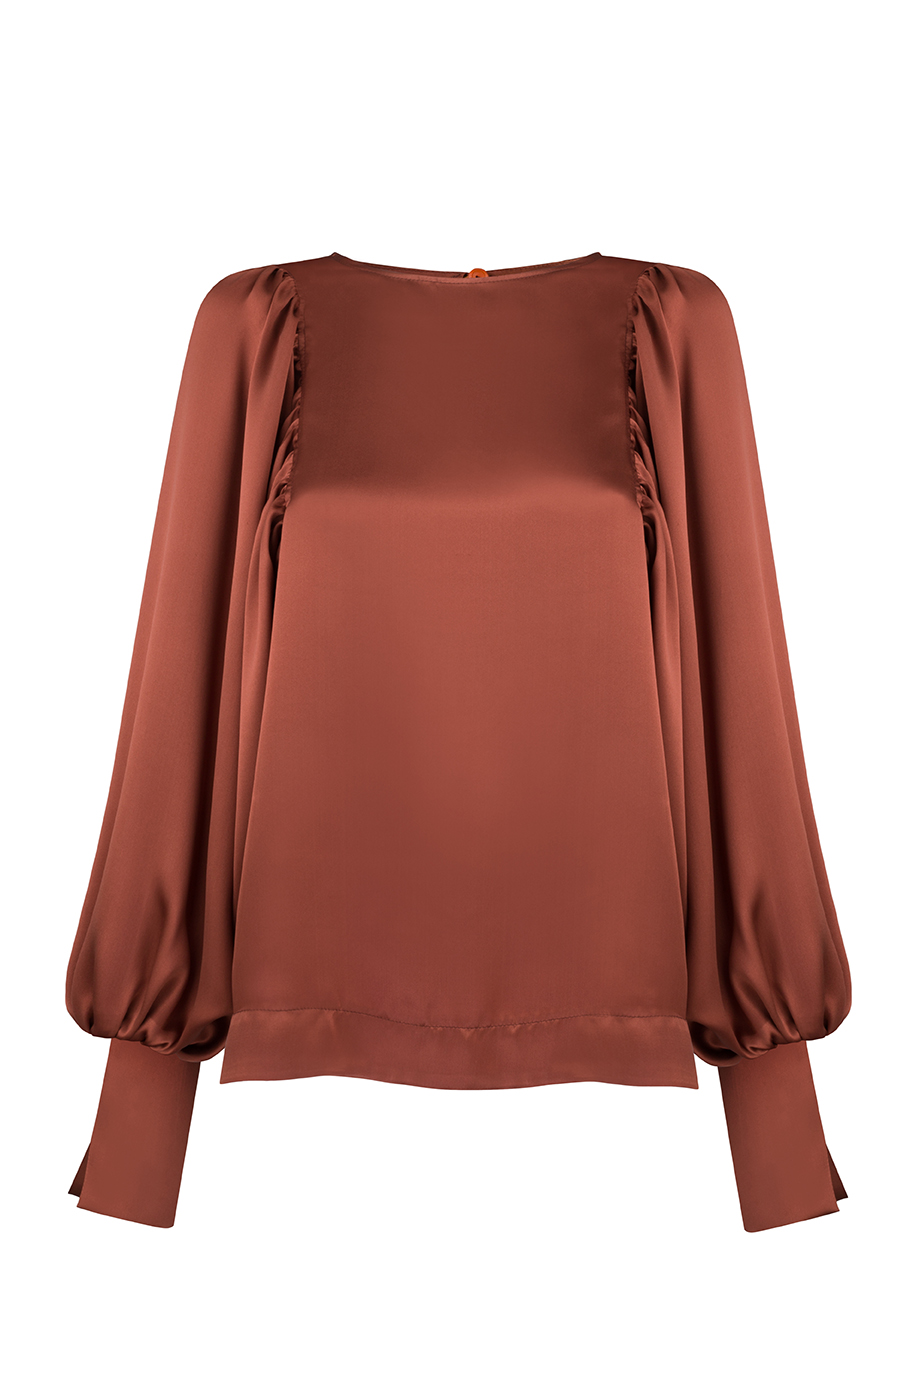 Aida Shirt - Brown by Monica Nera on curated-crowd.com